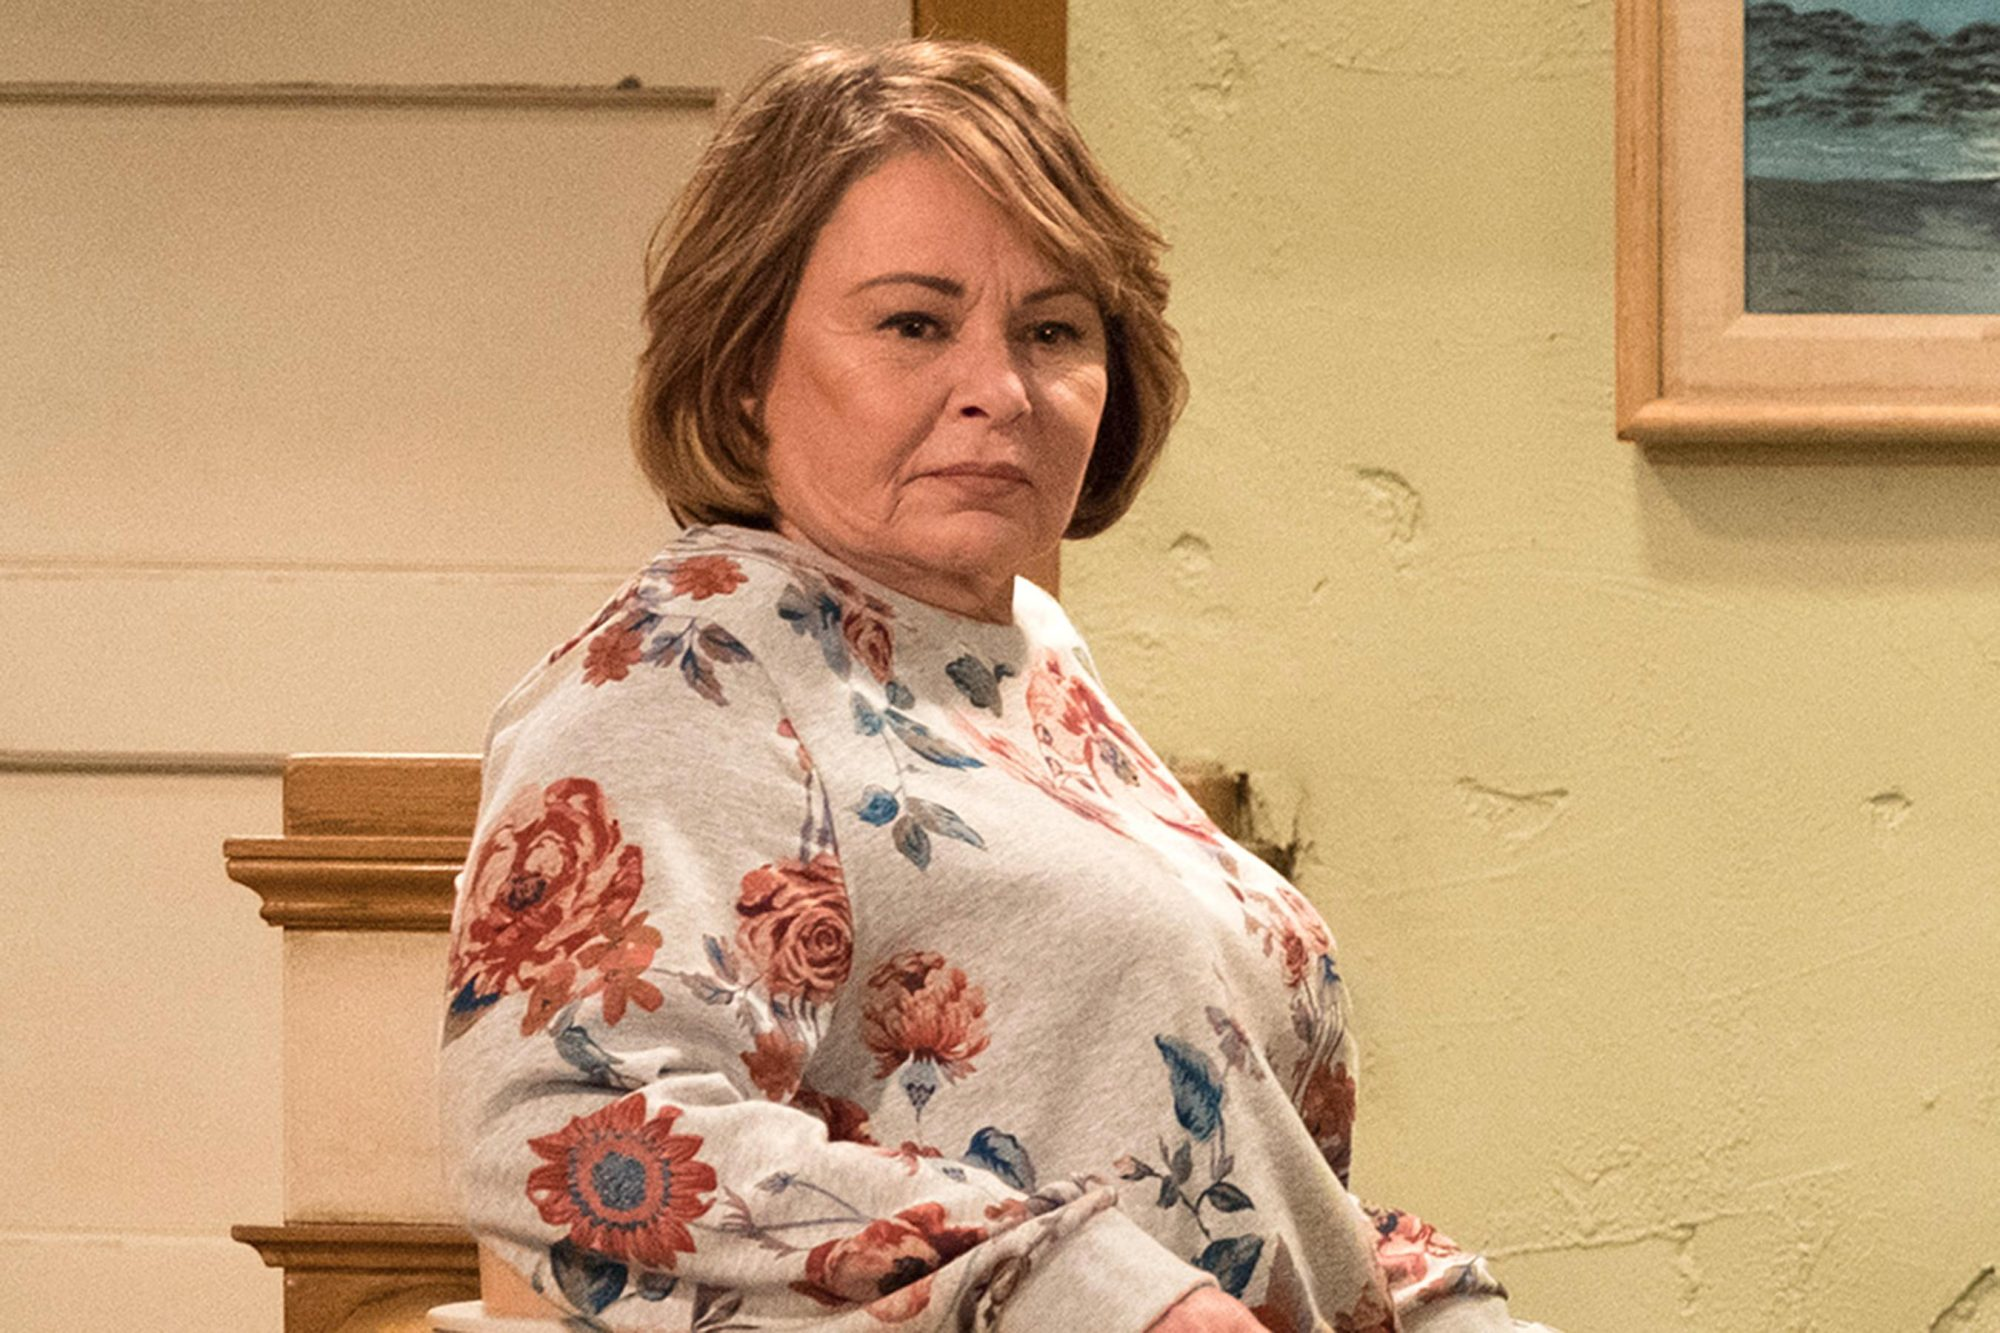 Roseanne is canceled